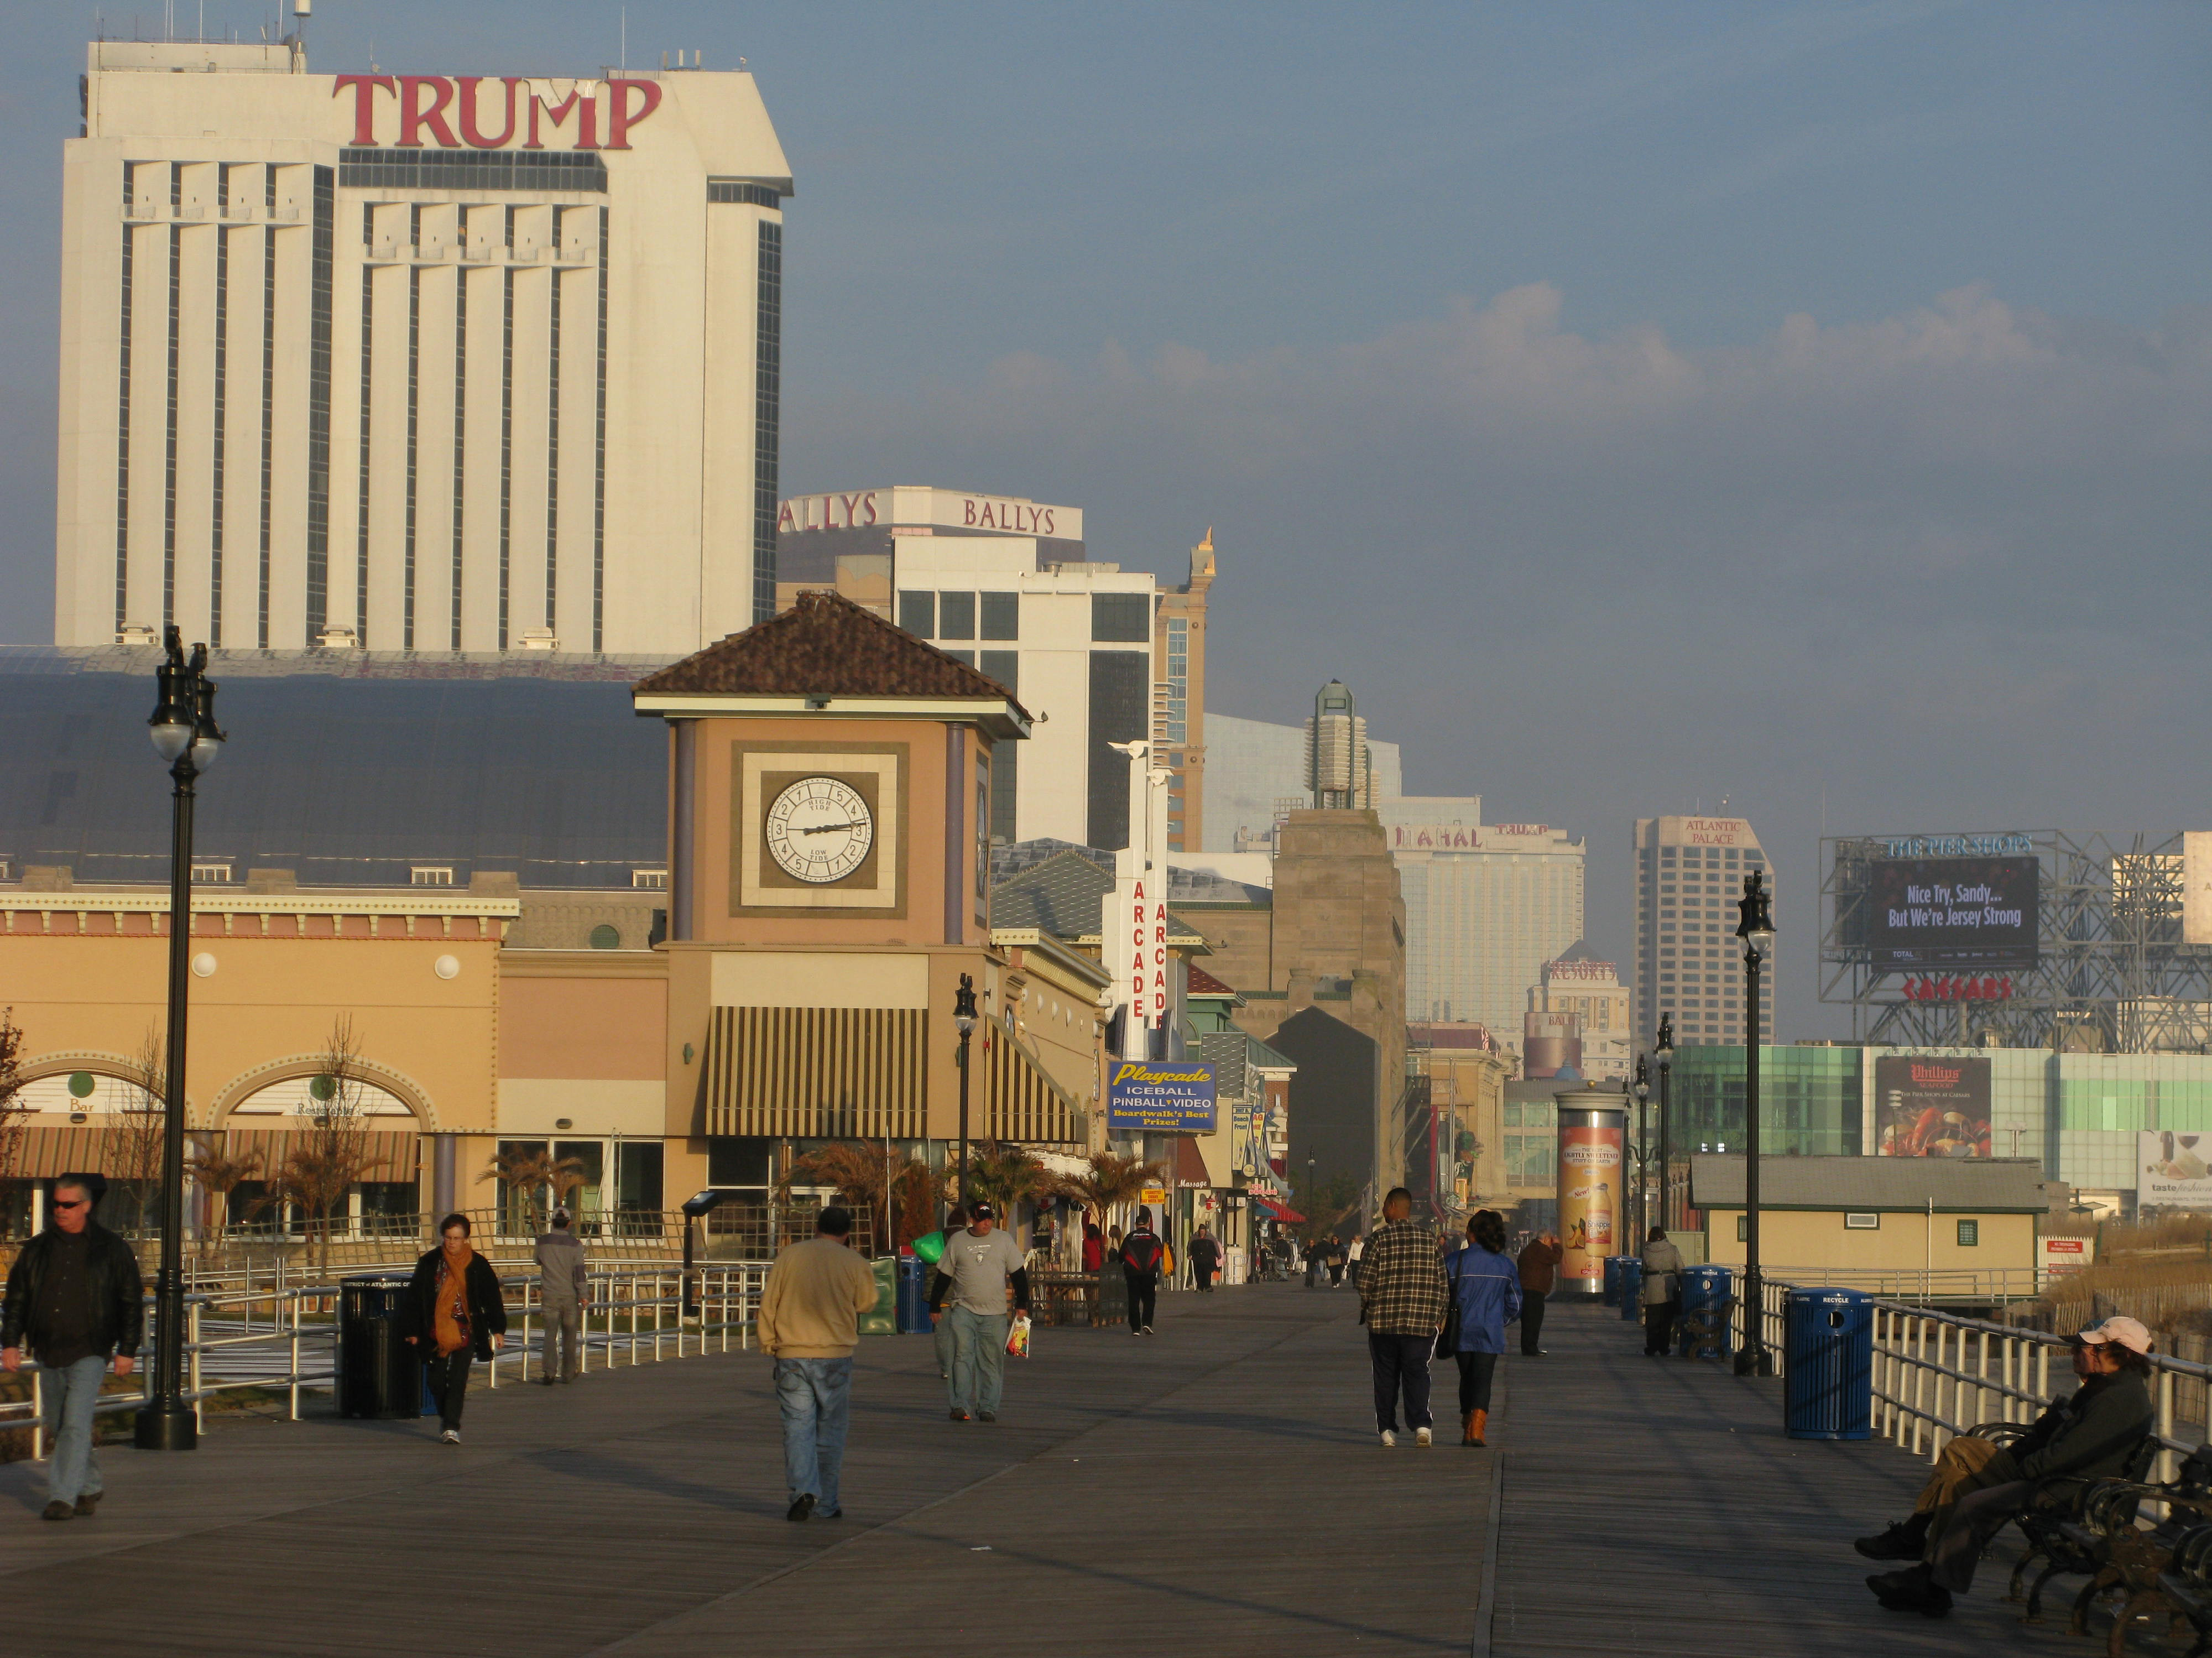 atlantic city casino damaged